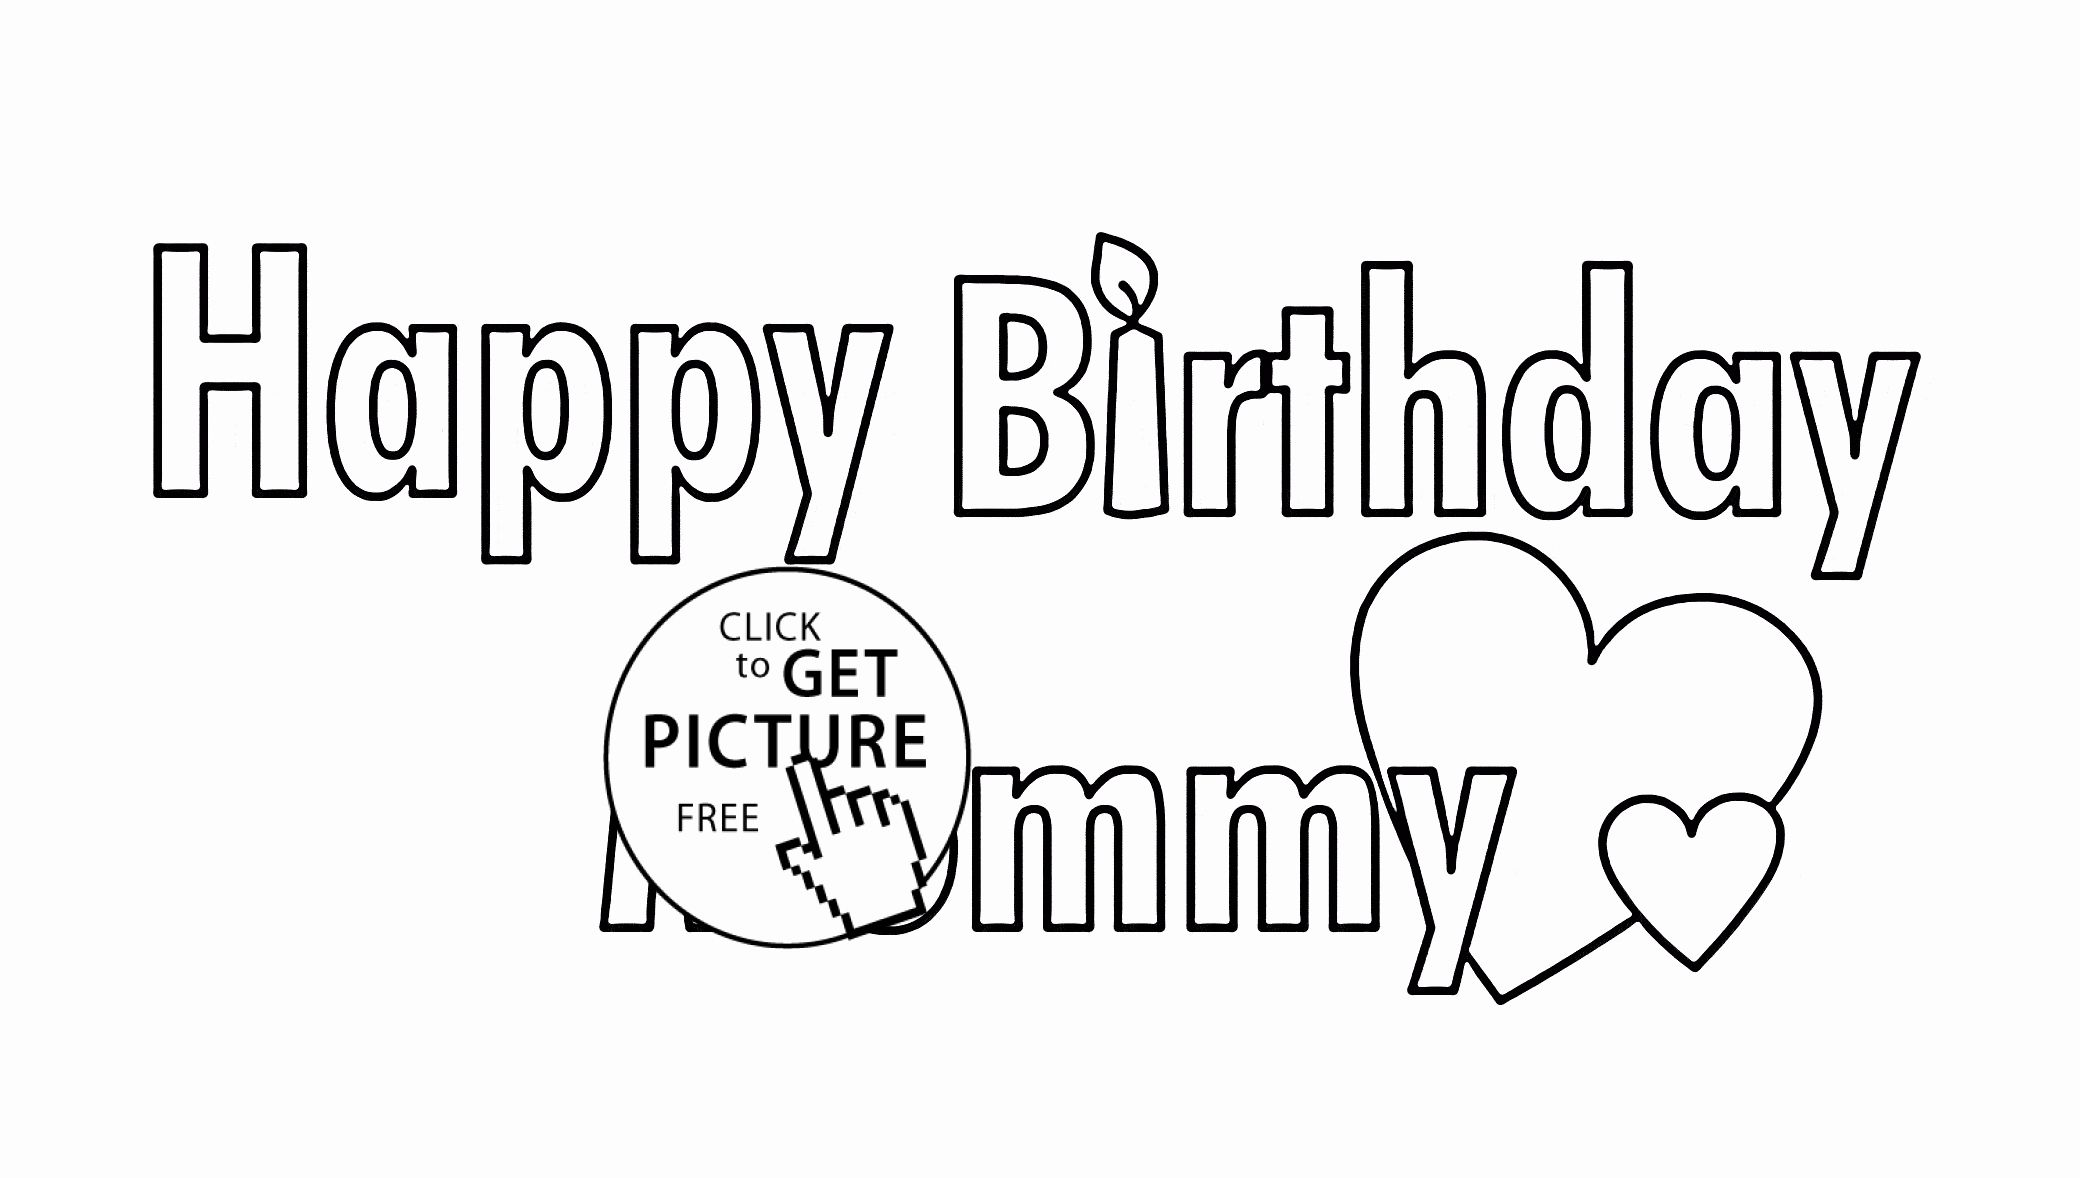 Happy Birthday Mom Coloring Page Awesome Happy Birthday Mommy Coloring Page For Kids In 2020 Happy Birthday Mommy Happy Birthday Coloring Pages Birthday Coloring Pages